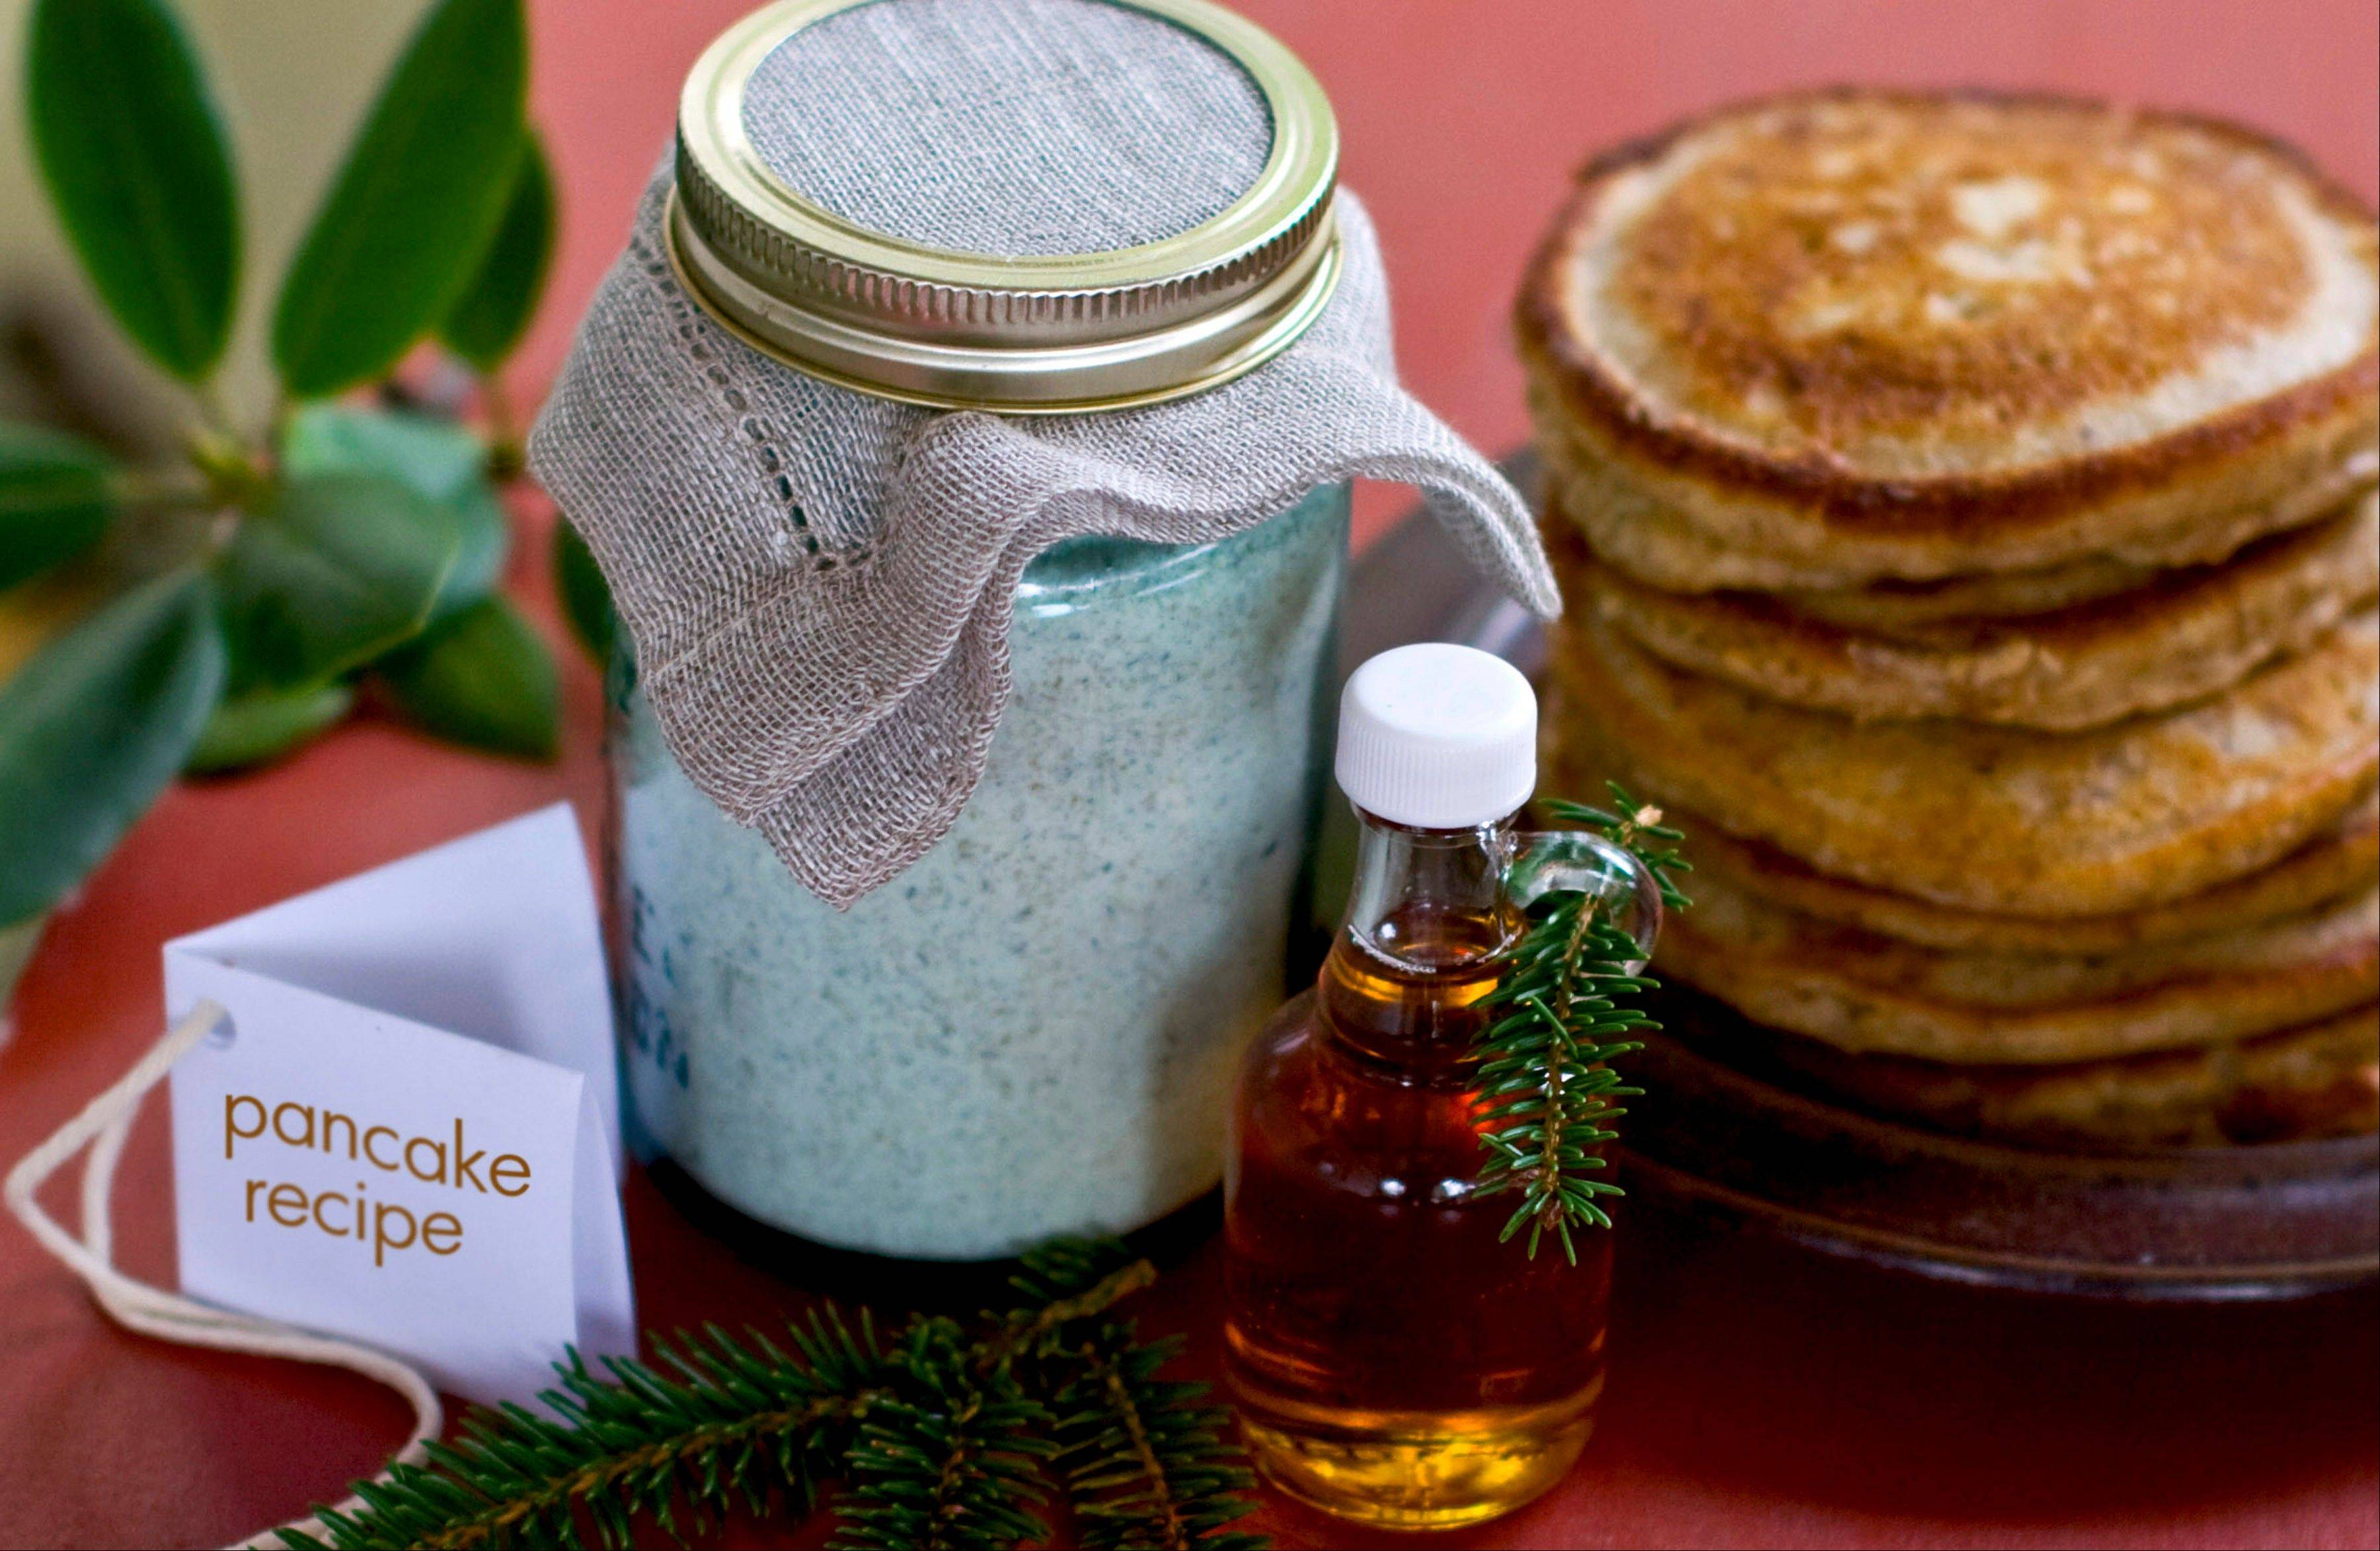 Make someone�s holiday bright and healthy with homemade pancake and waffle mix.